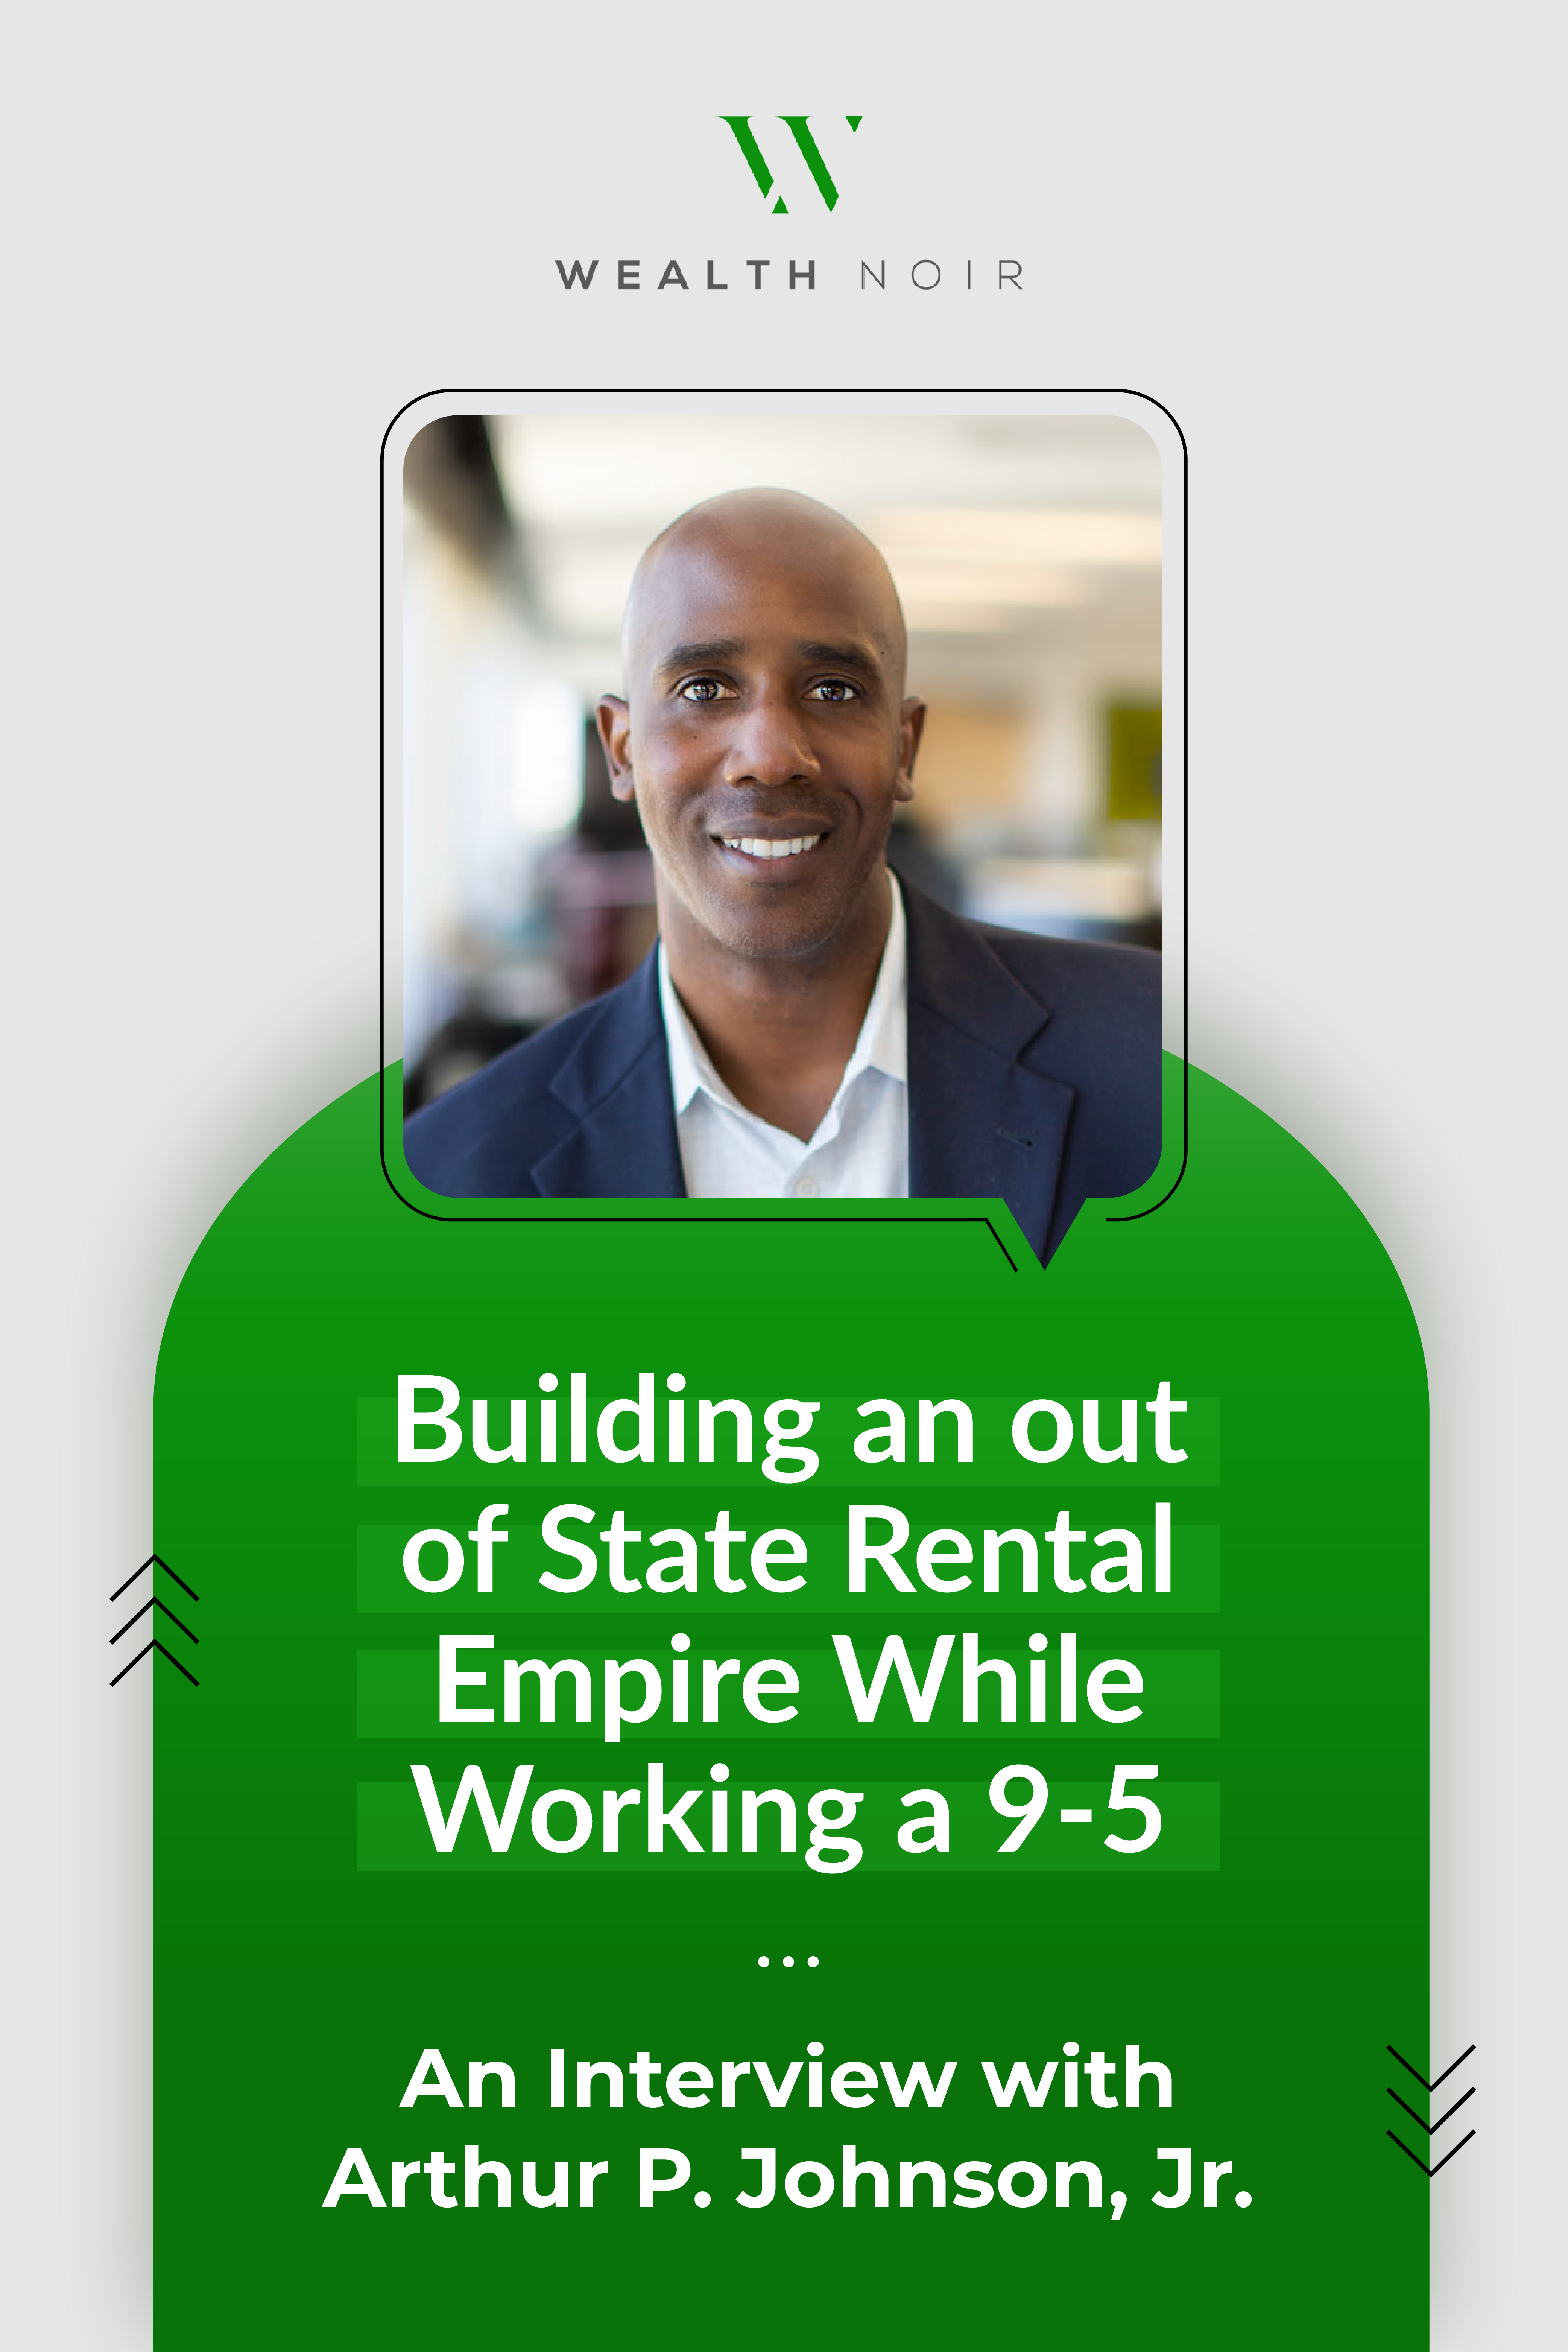 Building an out of State Rental Empire While Working a 9-5: An Interview with Arthur P. Johnson, Jr.